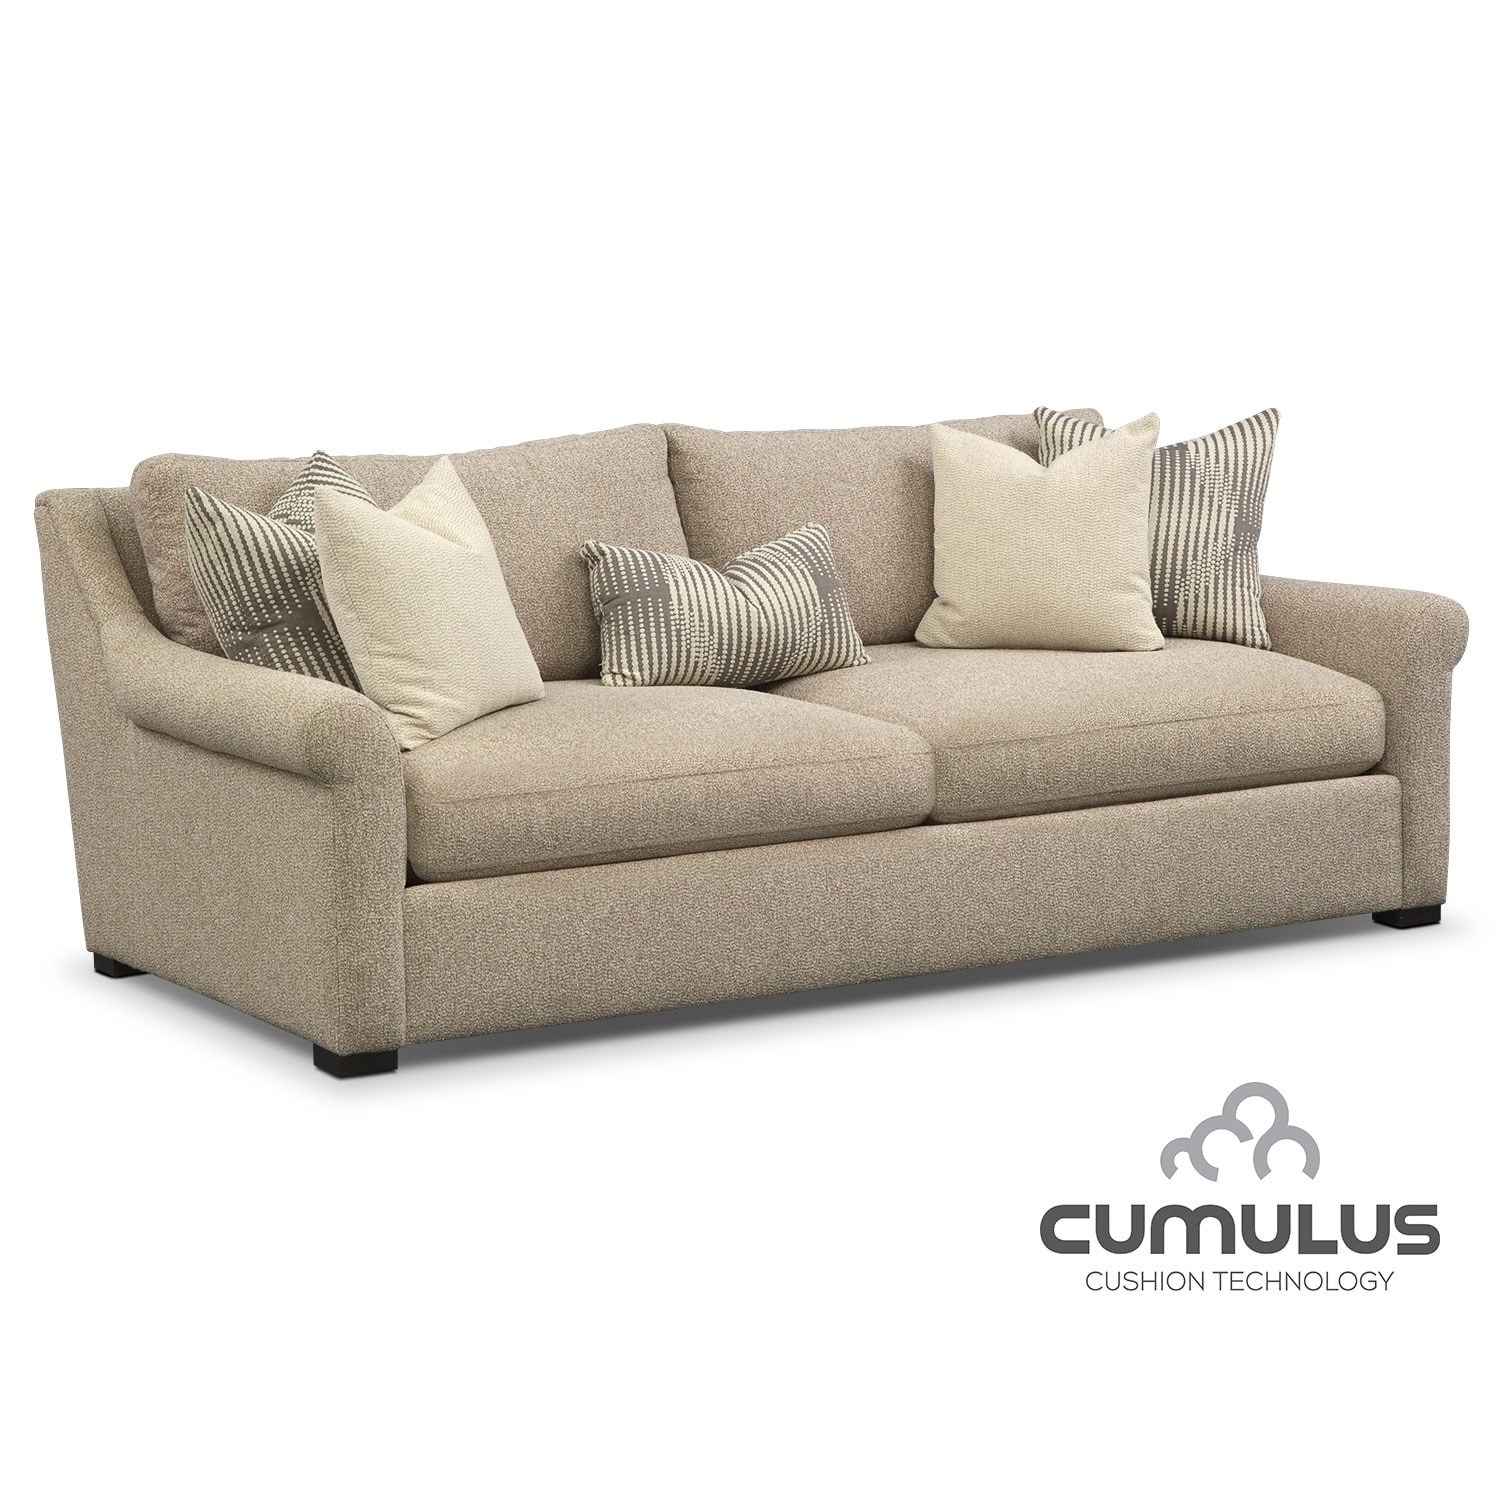 sofas couches living room seating american signature furniture rh americansignaturefurniture com american signature sofa collections american signature sofa sale